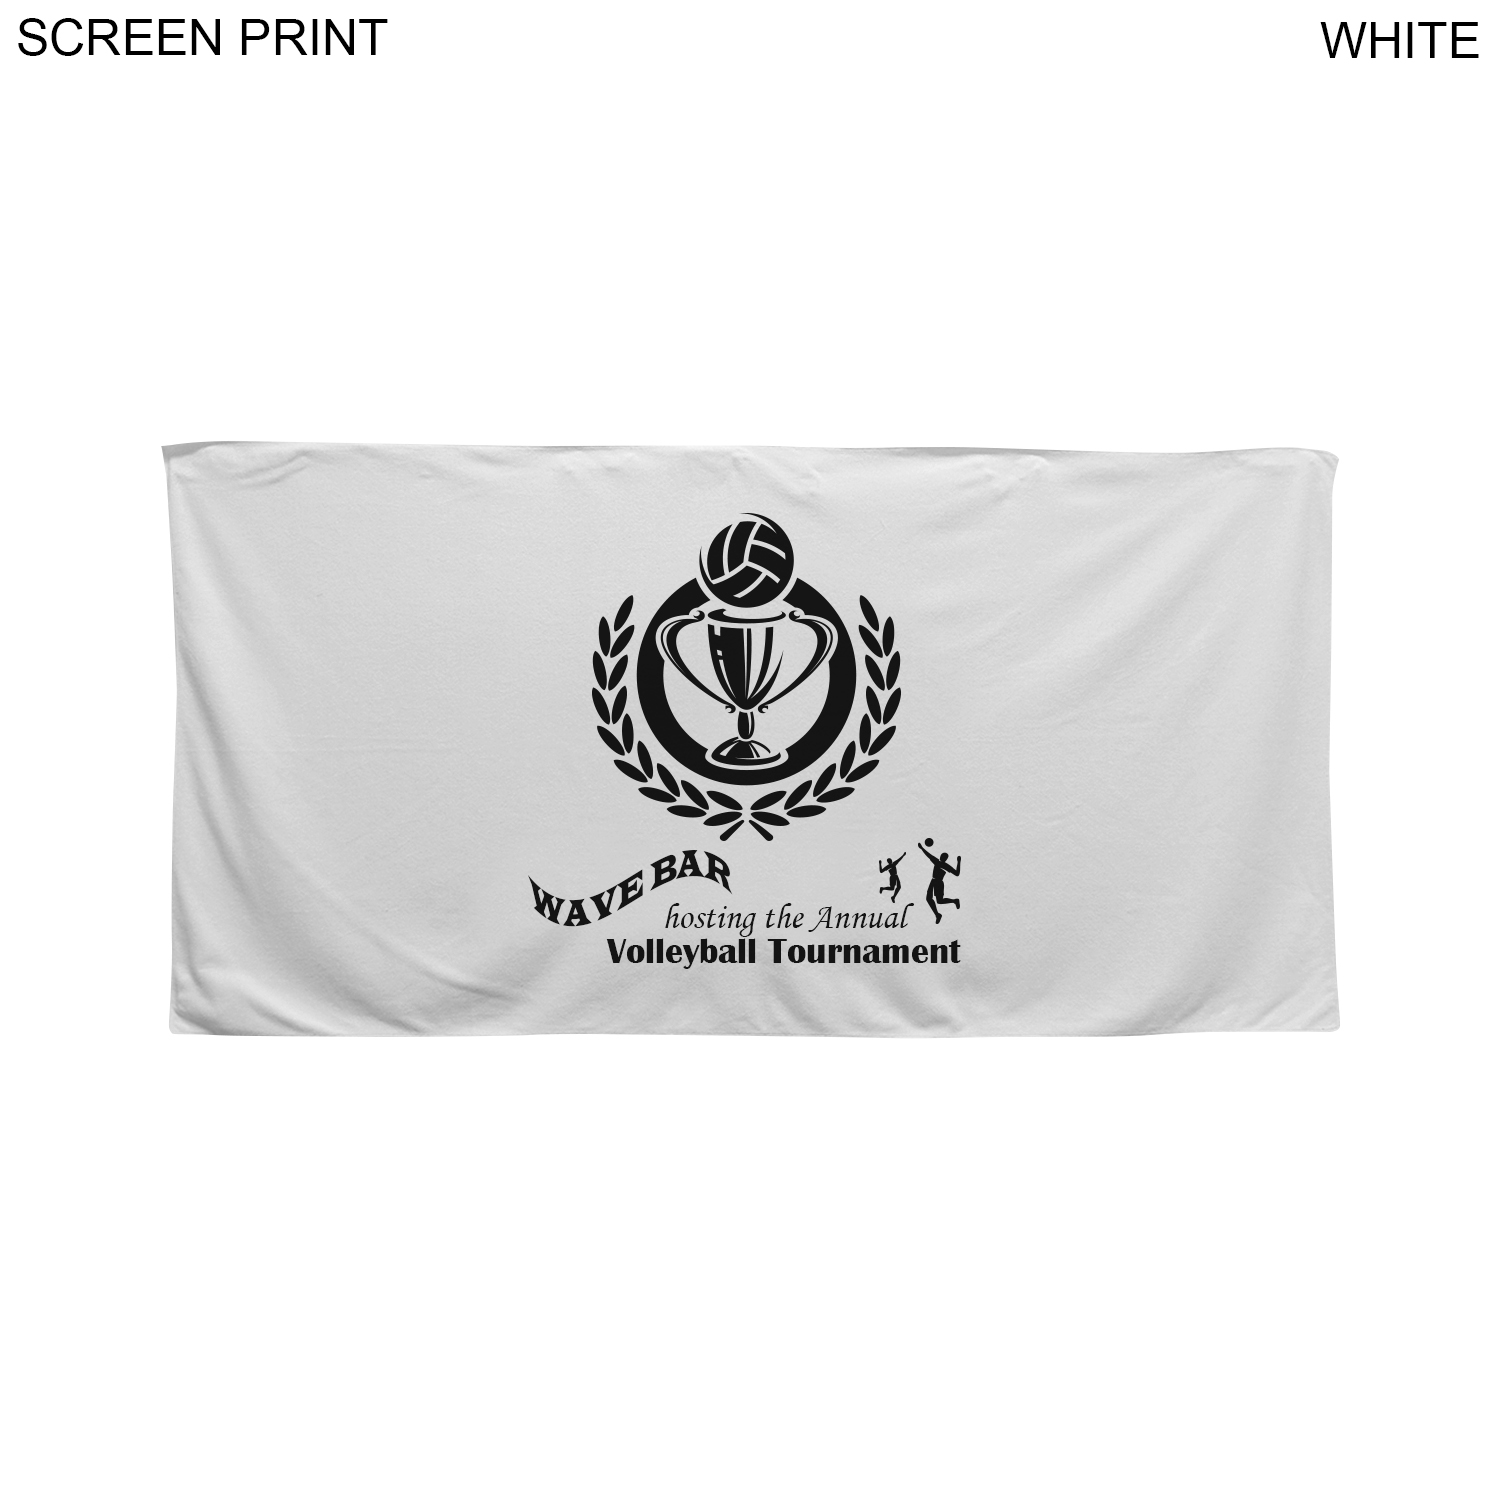 Velour Cotton Blend Beach Towel, 30x60, #PR586, 1 Colour Imprint